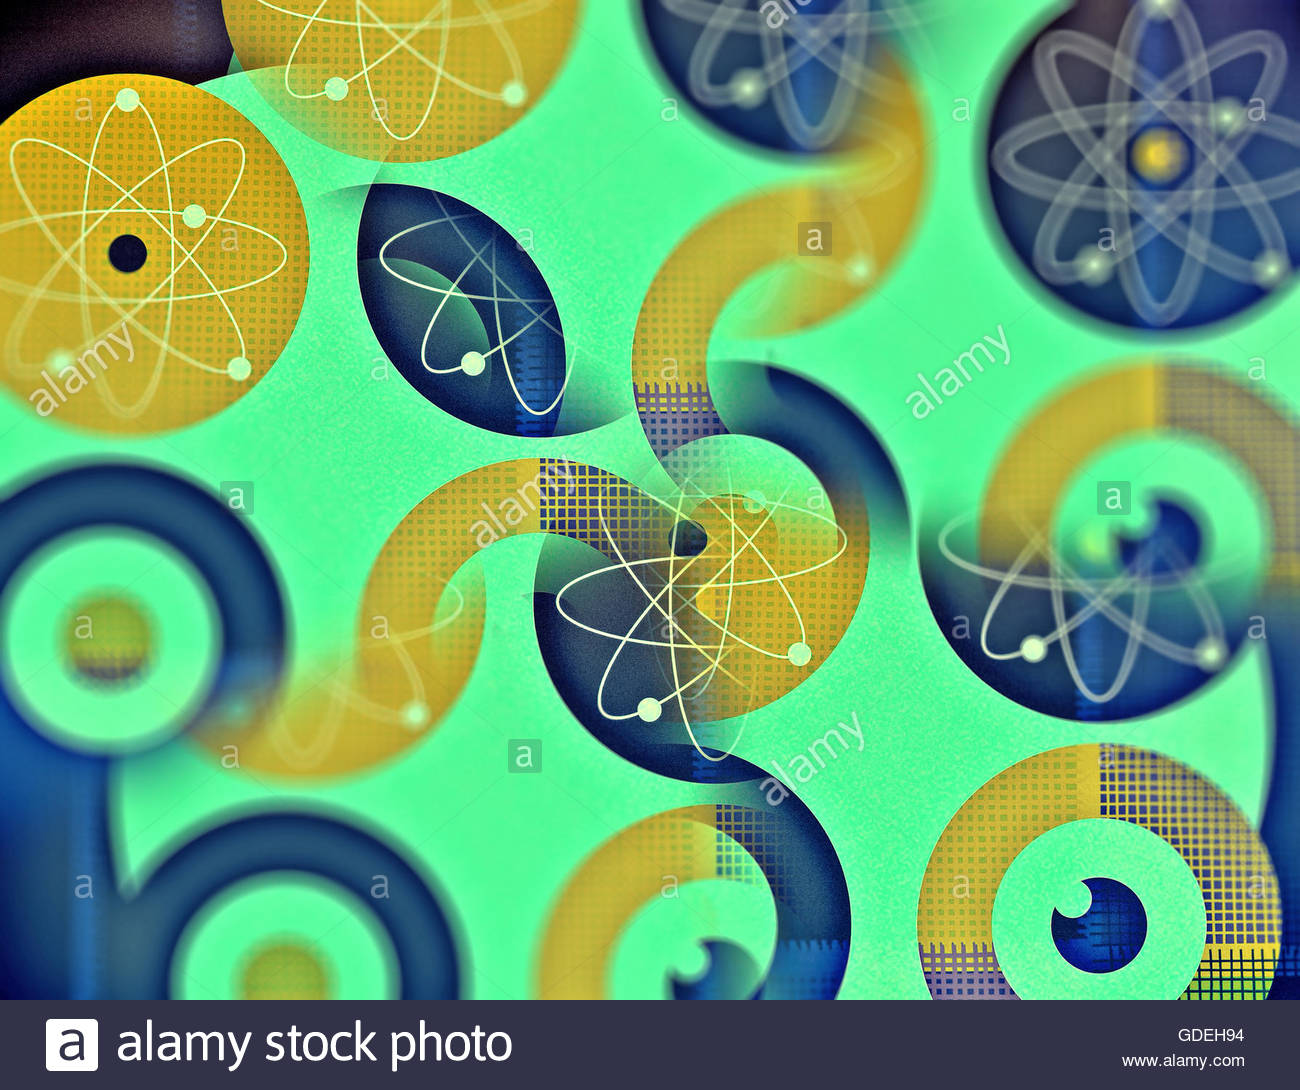 Atomic energy target retro mid century nuclear atom illustration - Stock Image